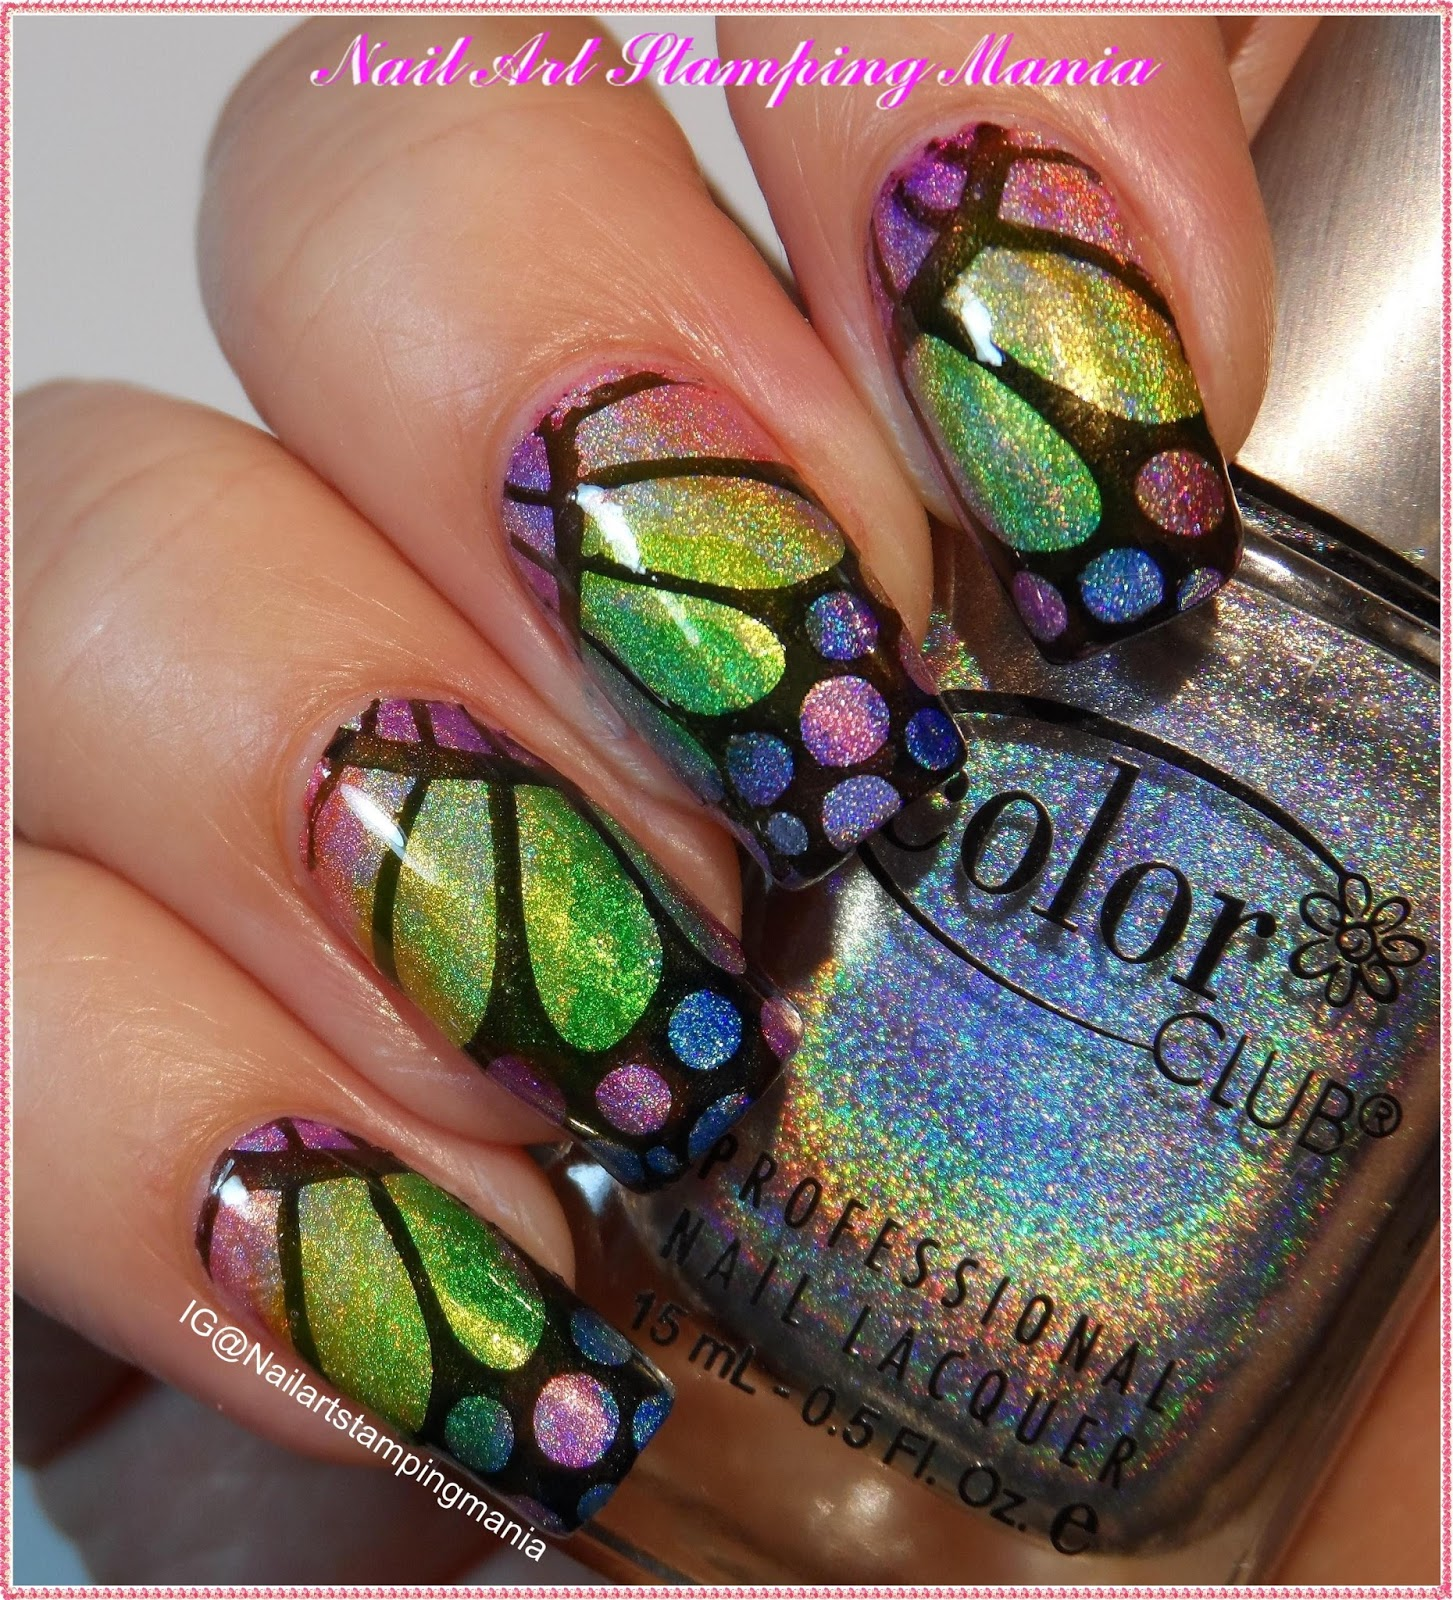 Nail Art Stamping Mania: Holographic Butterfly Manicure with ...